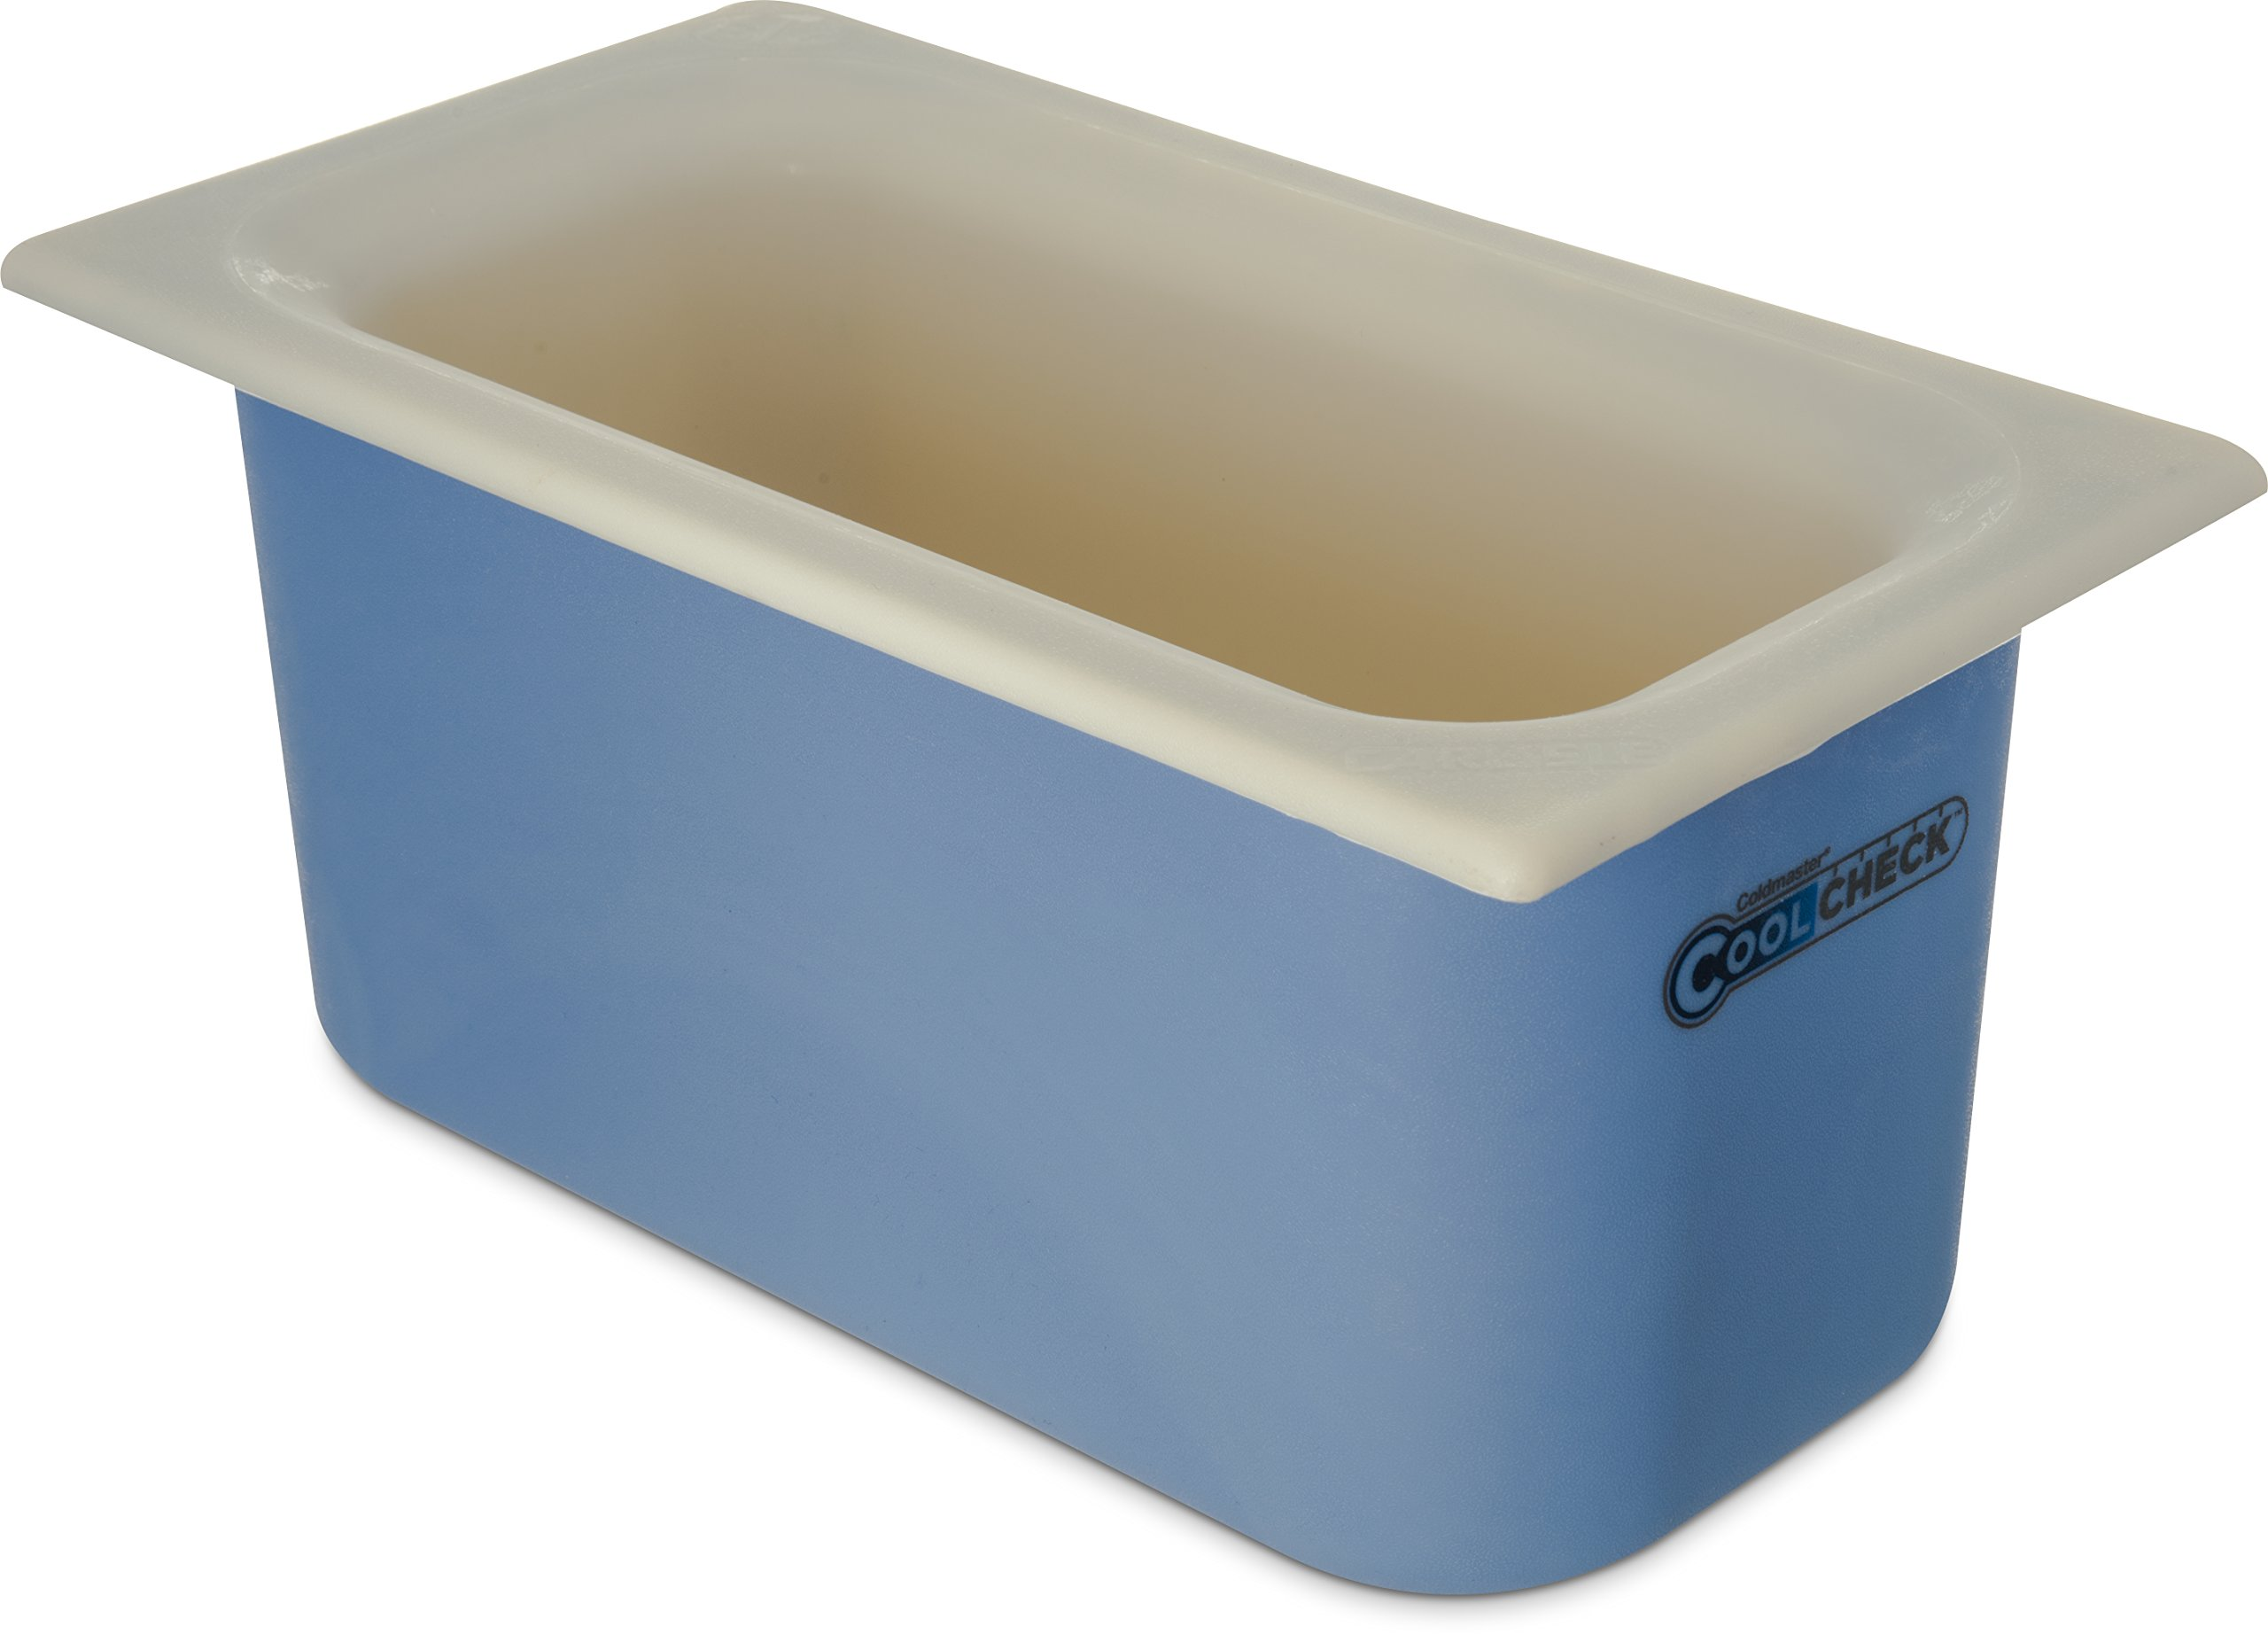 Carlisle CM1102C1402 Coldmaster CoolCheck 6'' Deep Third-Size Insulated Food Pan, 4 Quart, Color Changing, White/Blue